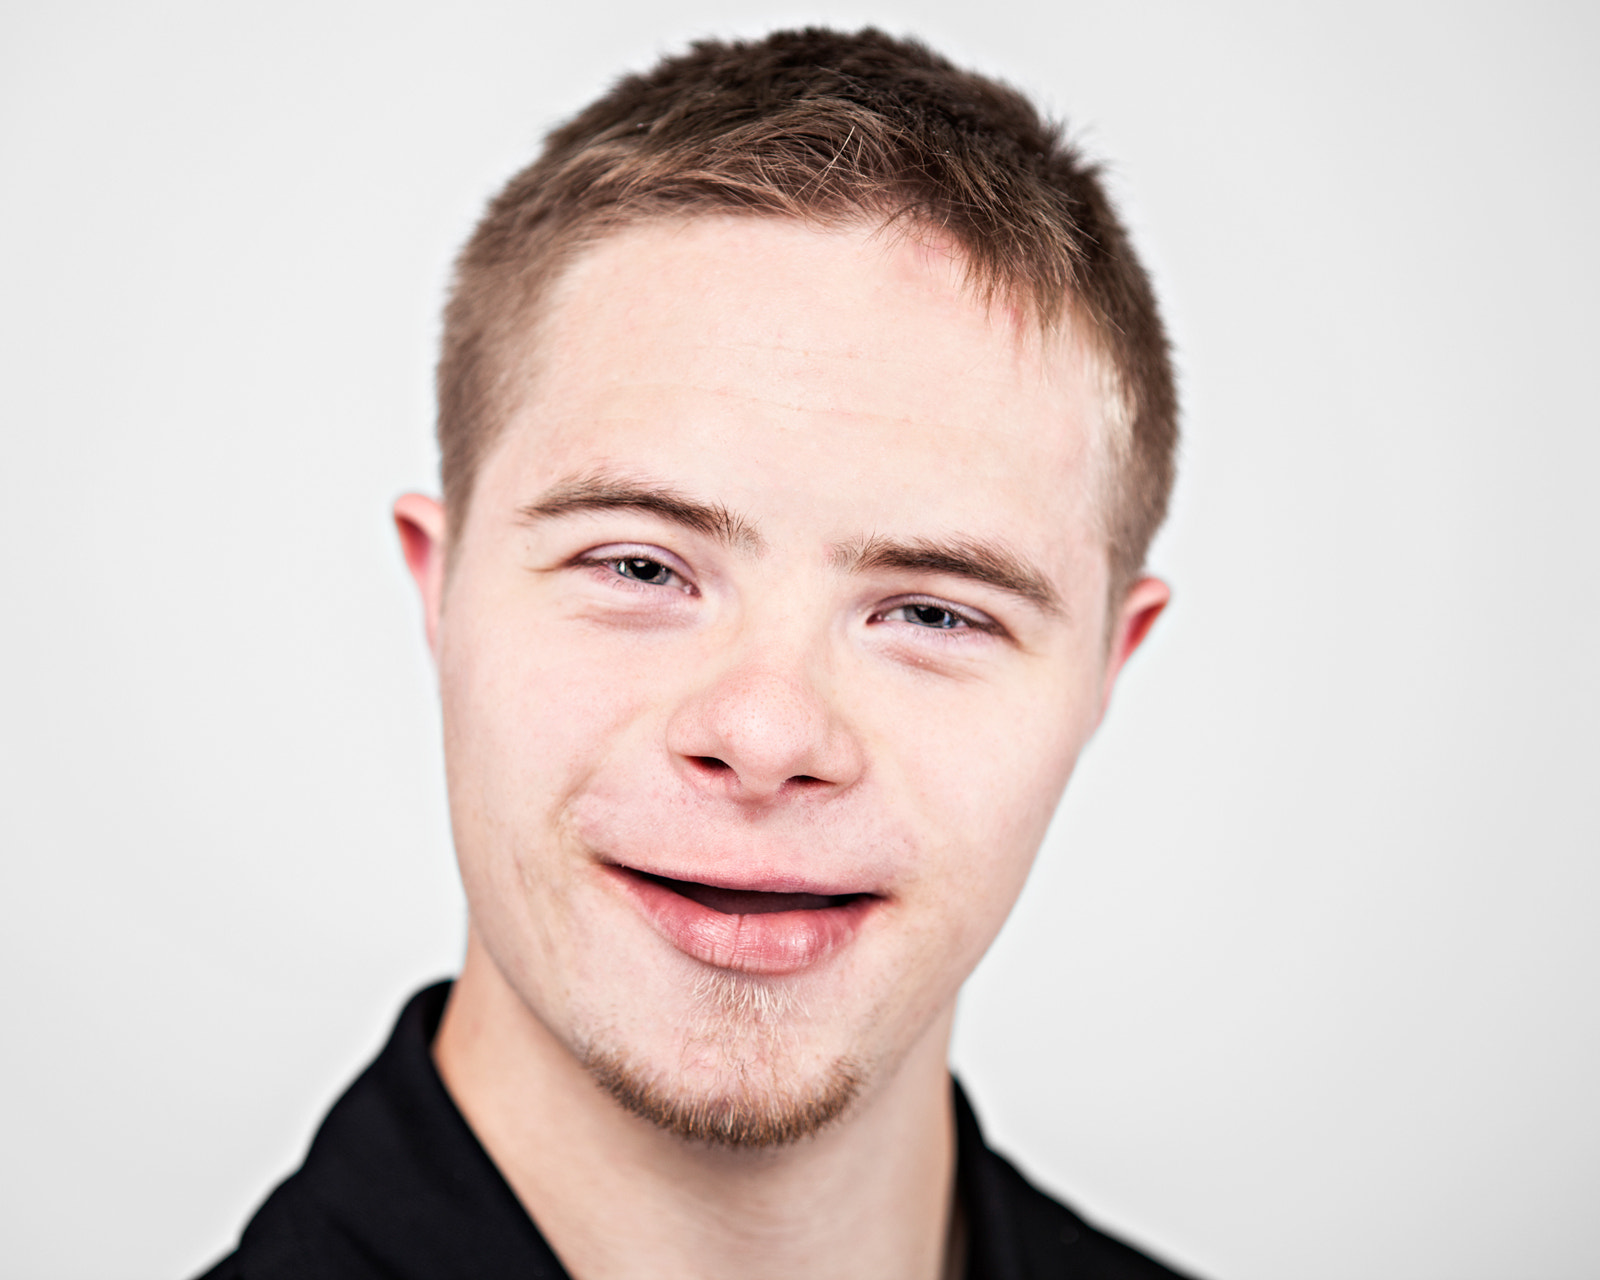 Photograph CDSS Downs Syndrome Awareness Month Campaign by James Robertson on 500px